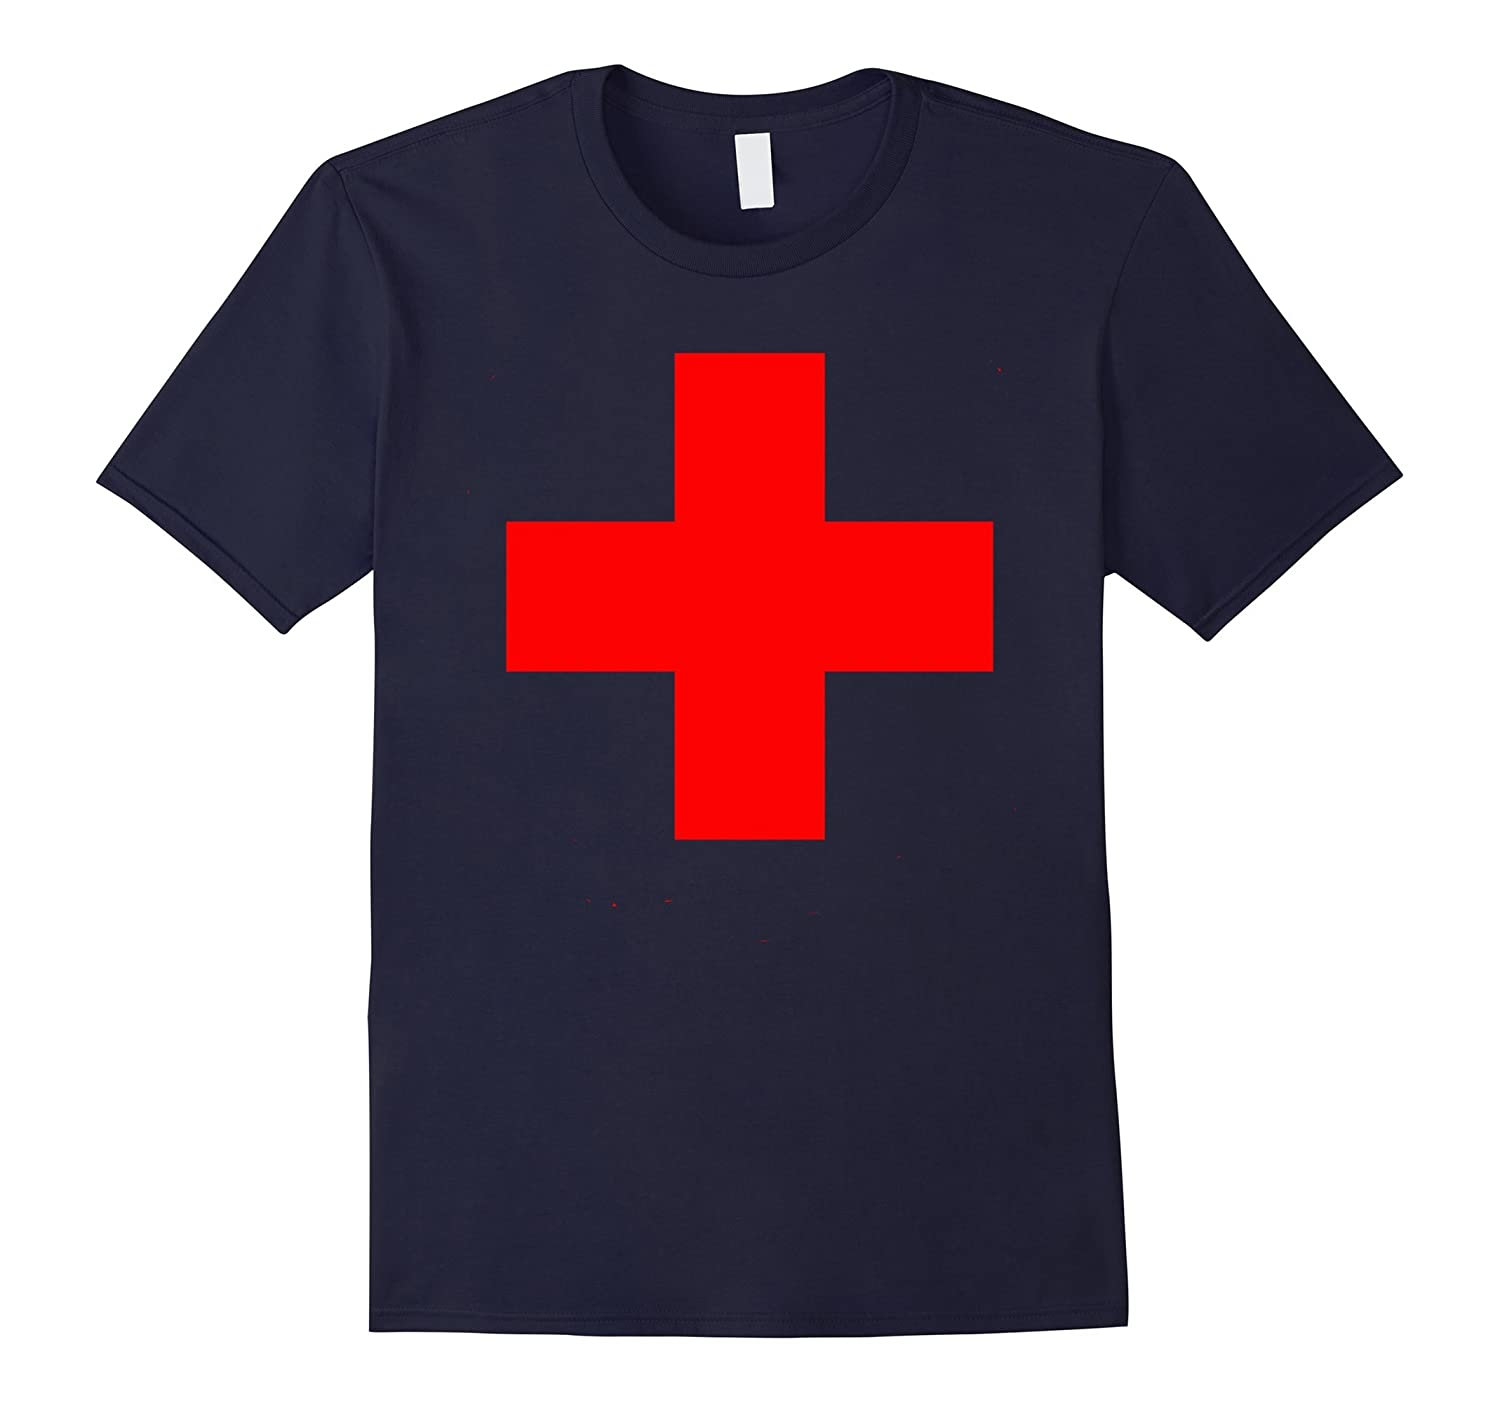 Large Medical Cross Emblem T-Shirt Medic Nurse MD EMT ER ED-CL